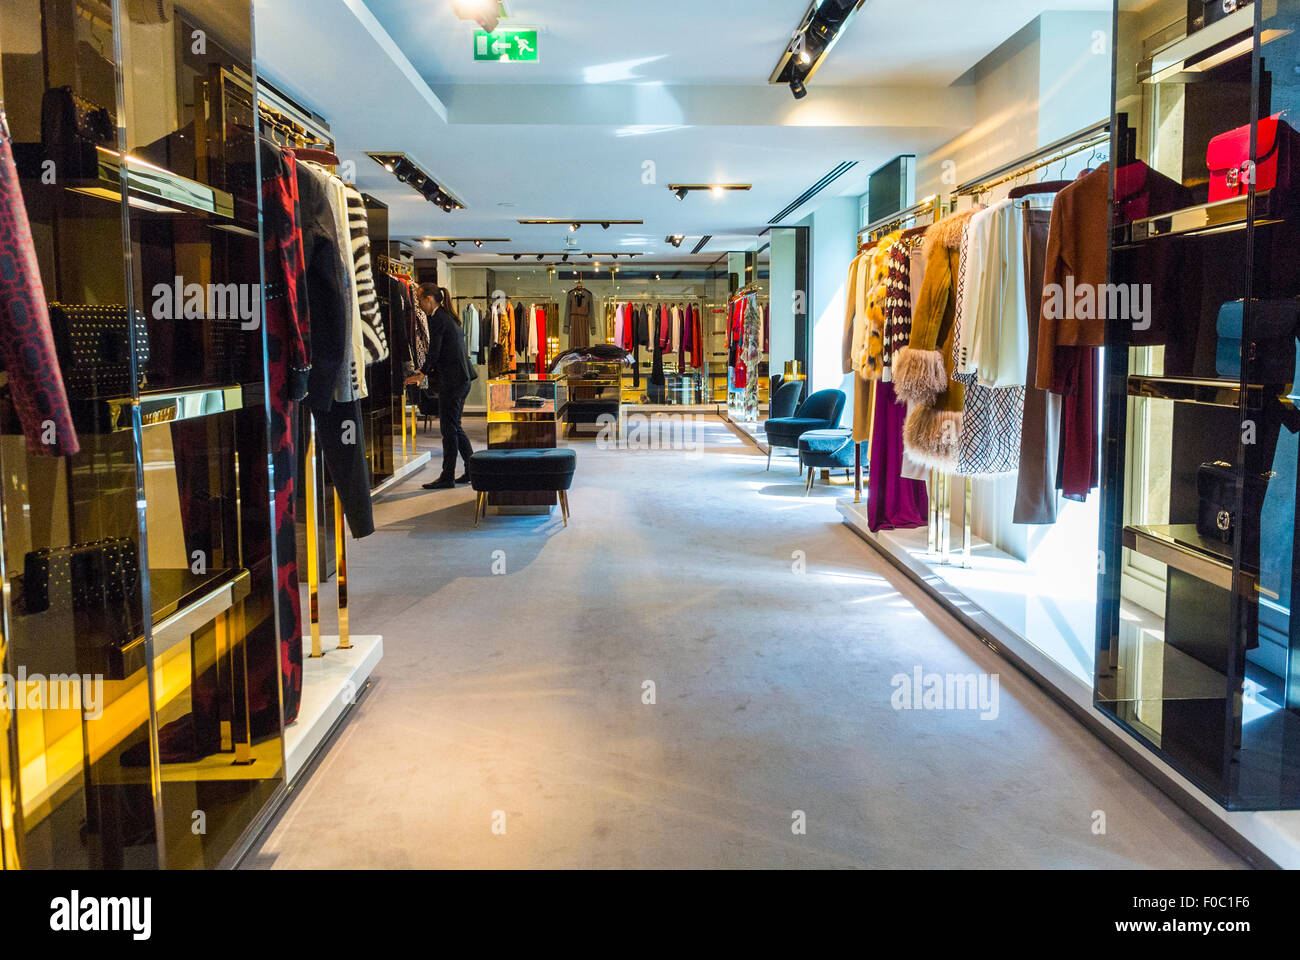 paris gucci fashion store im genes de stock paris gucci fashion store fotos de stock alamy. Black Bedroom Furniture Sets. Home Design Ideas